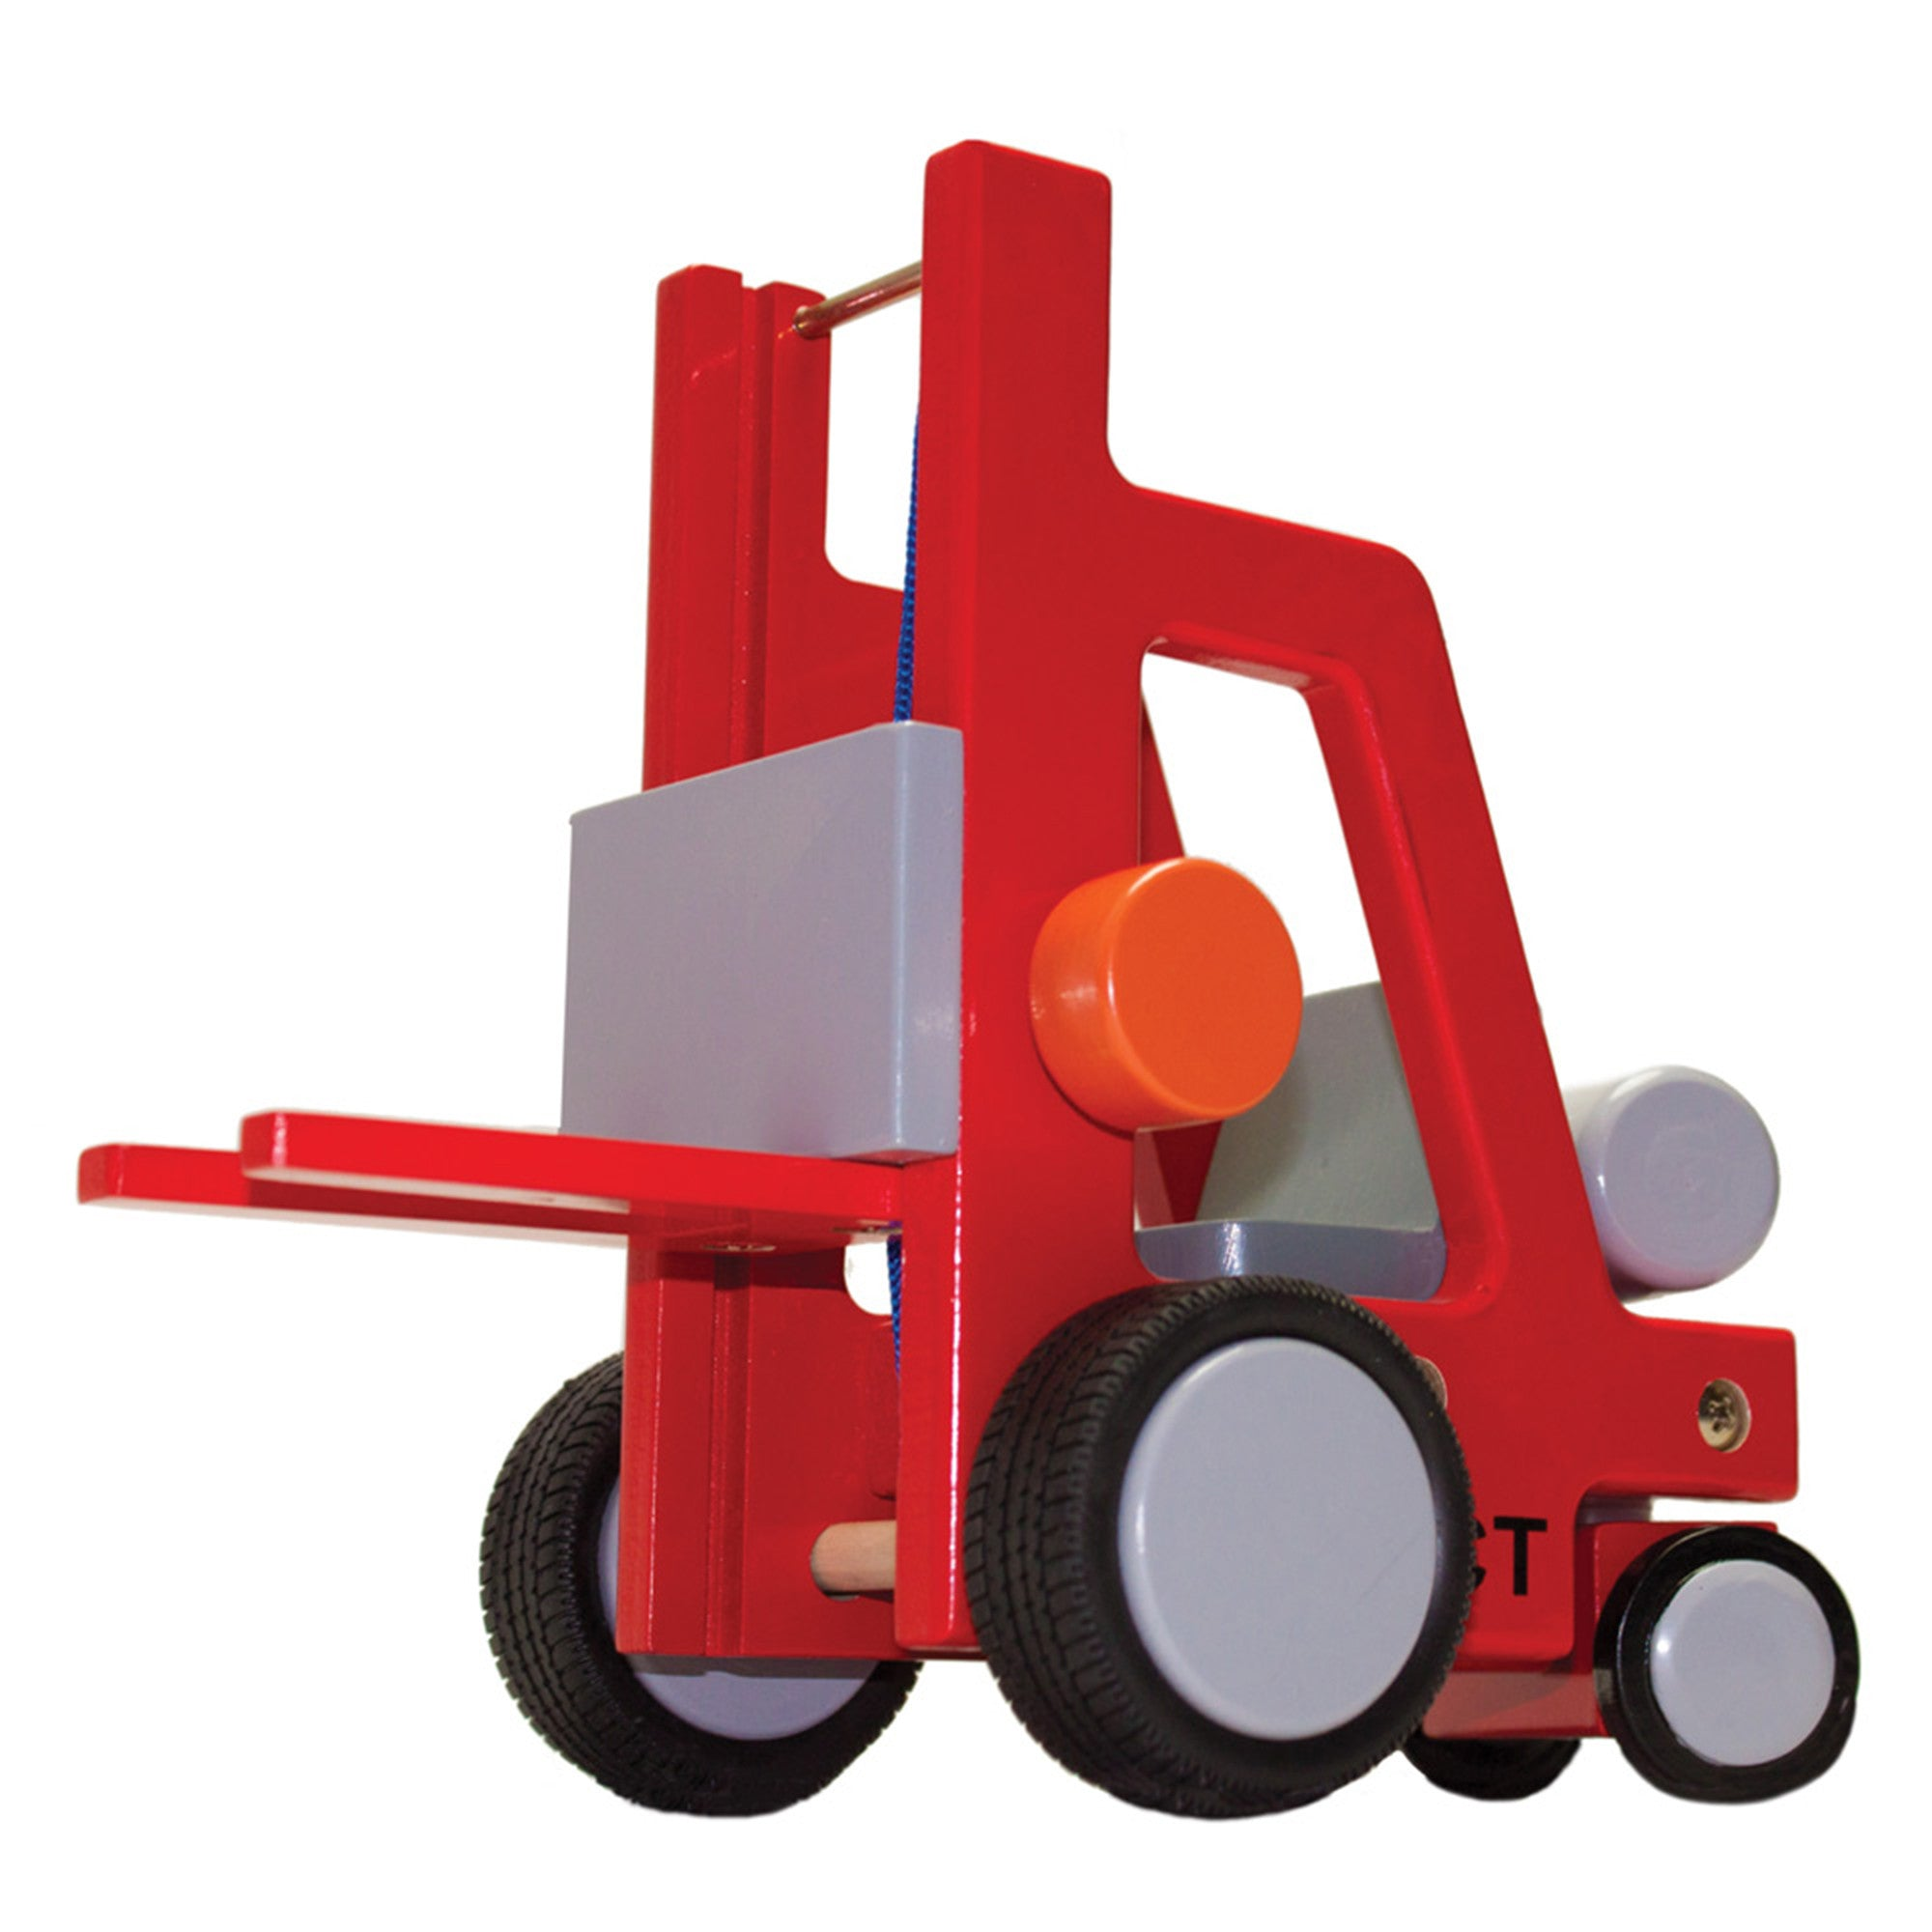 New Classic Toys Wooden Forklift New Classic Toys Play Vehicles at Little Earth Nest Eco Shop